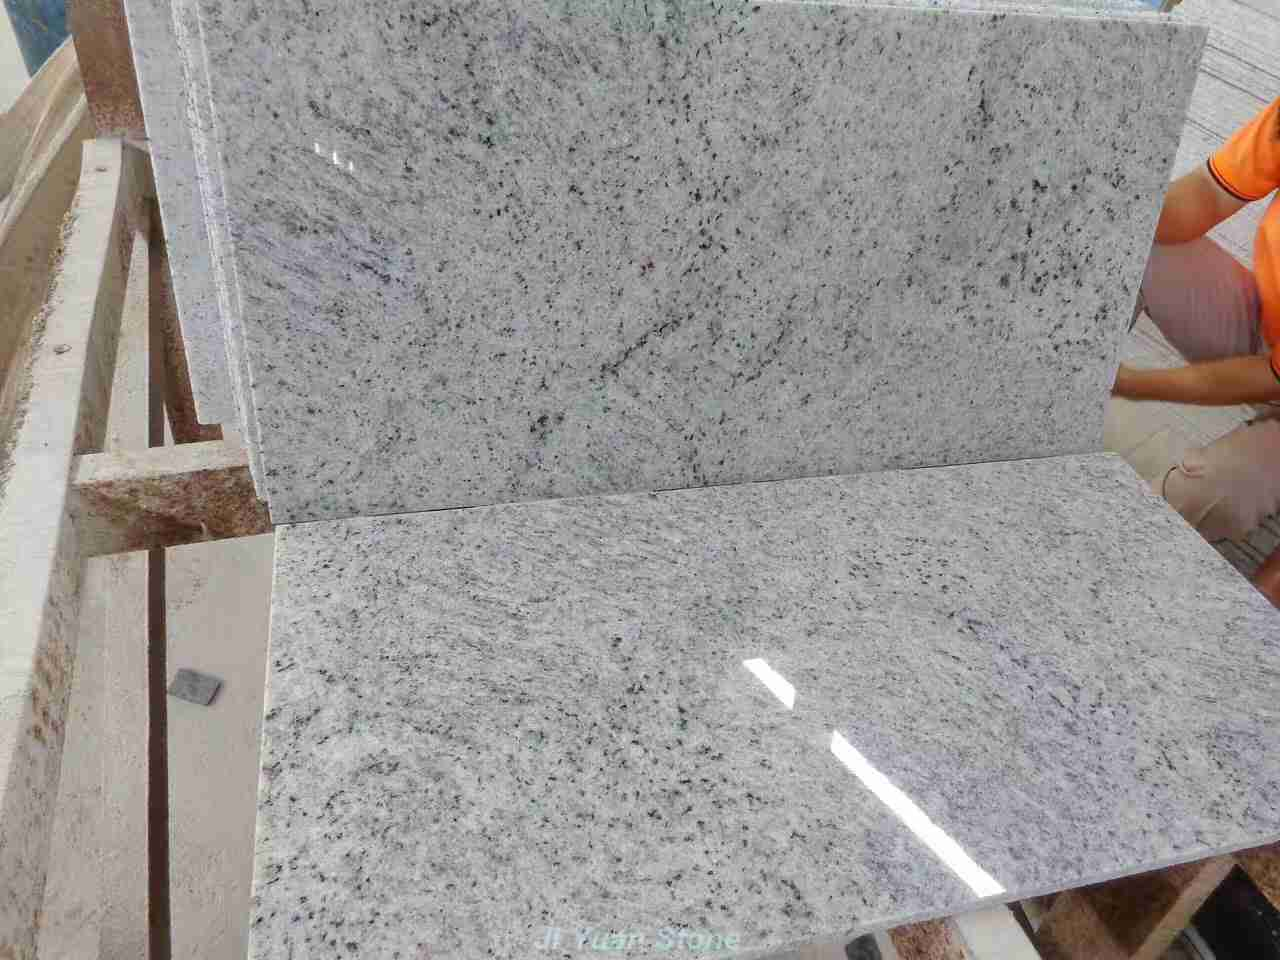 Kashmir granite countertops,new kashmir white,kashmir white granite cost,cashmere granite countertops,cashmere white granite countertops,kashmir white granite slab